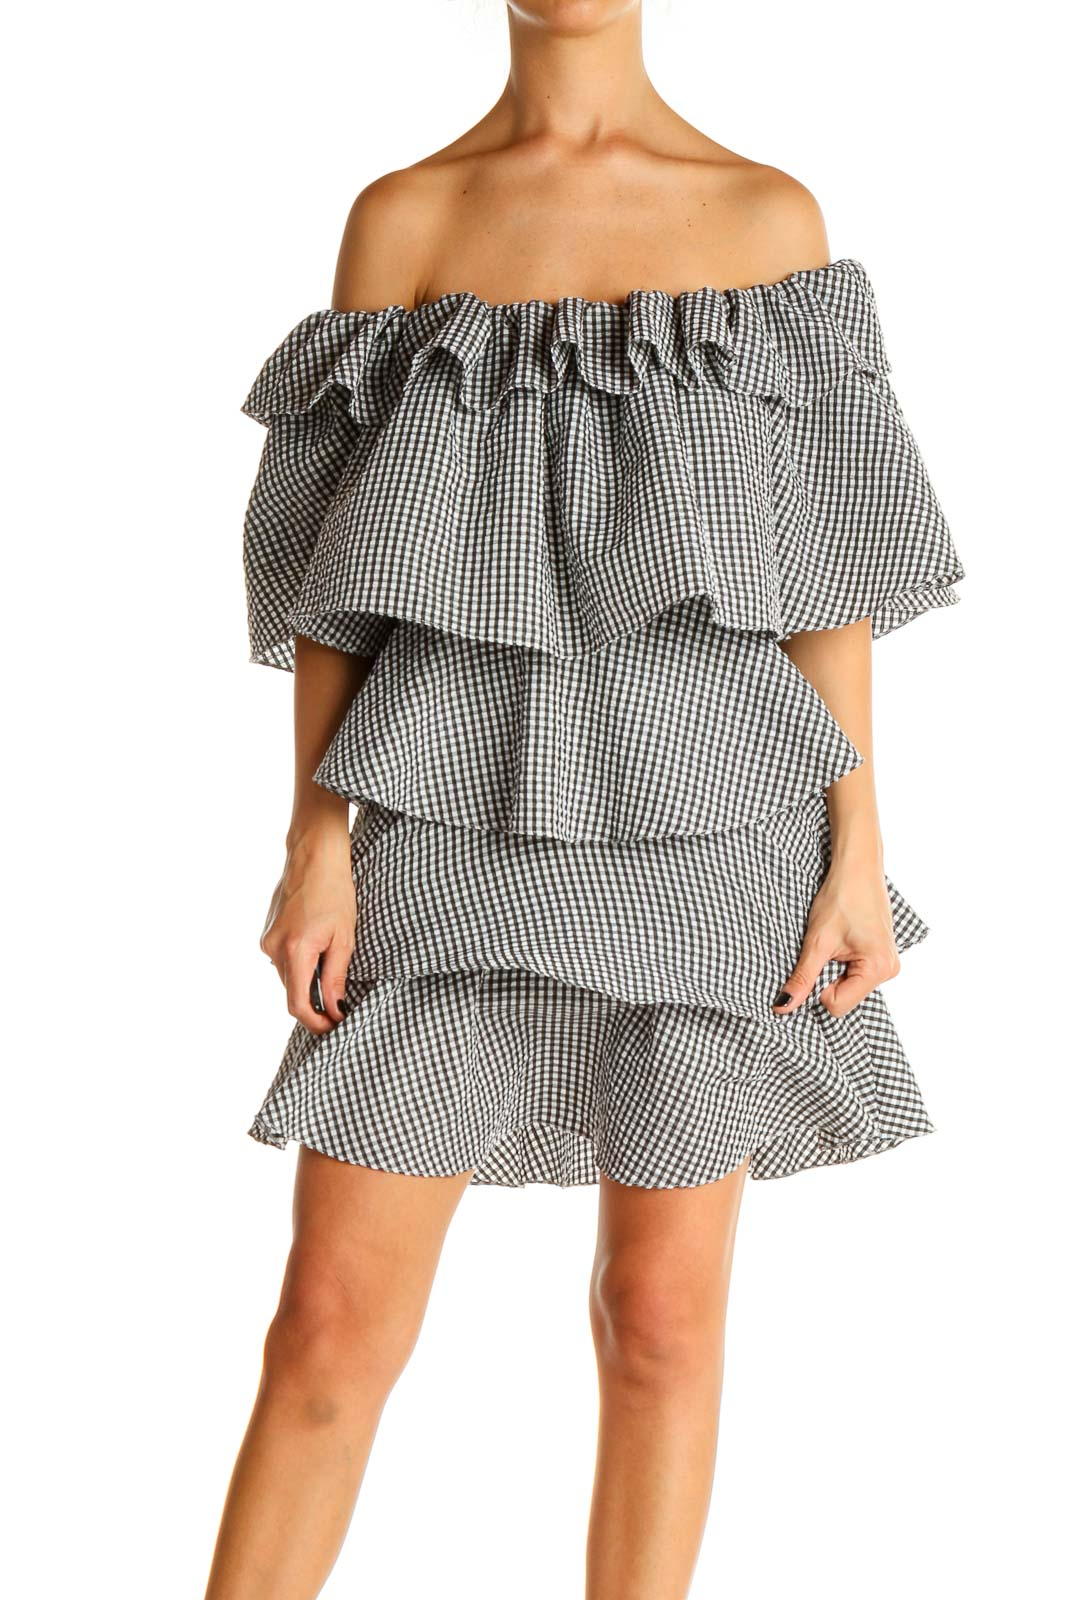 Gray Checkered Chic Fit & Flare Dress Front